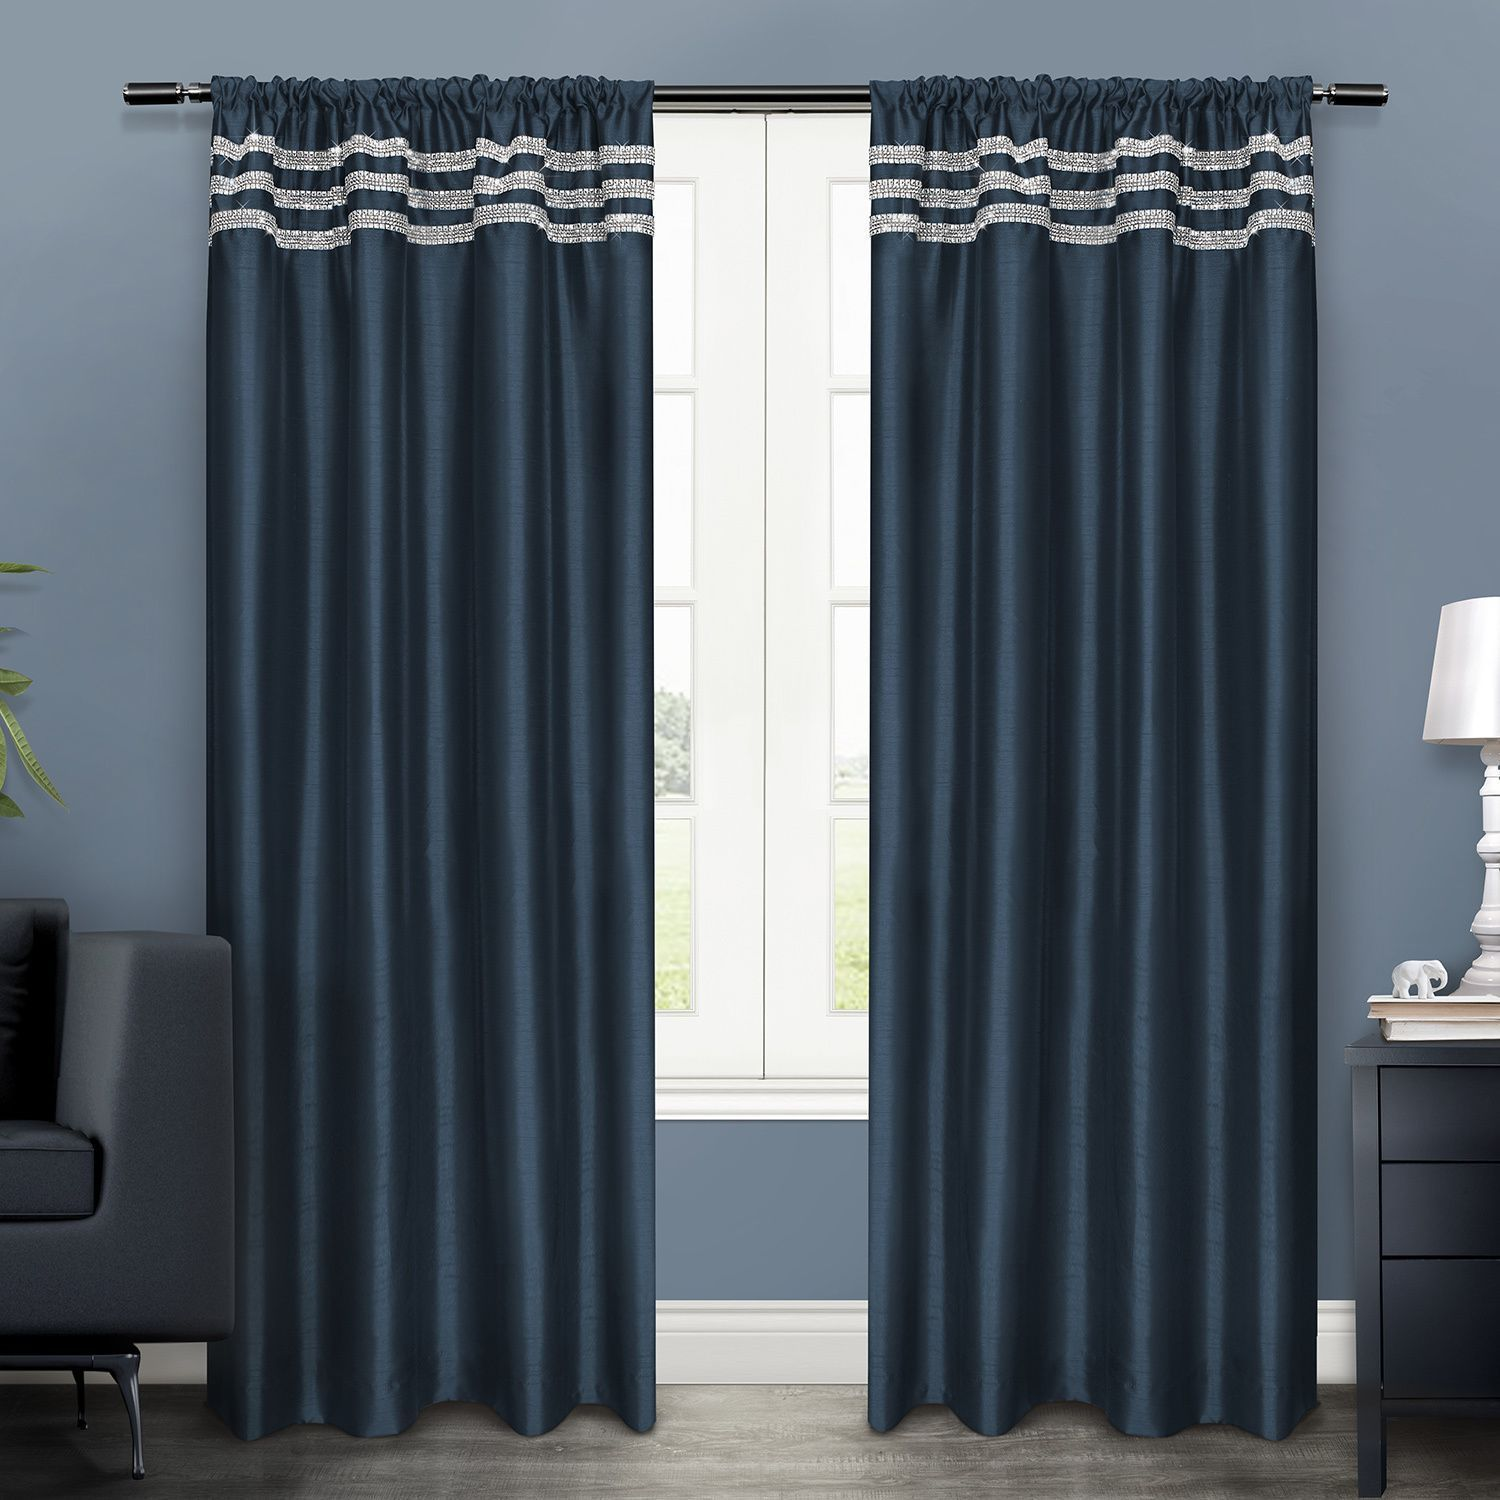 Home Panel Curtains 96 Inch Curtains Curtains